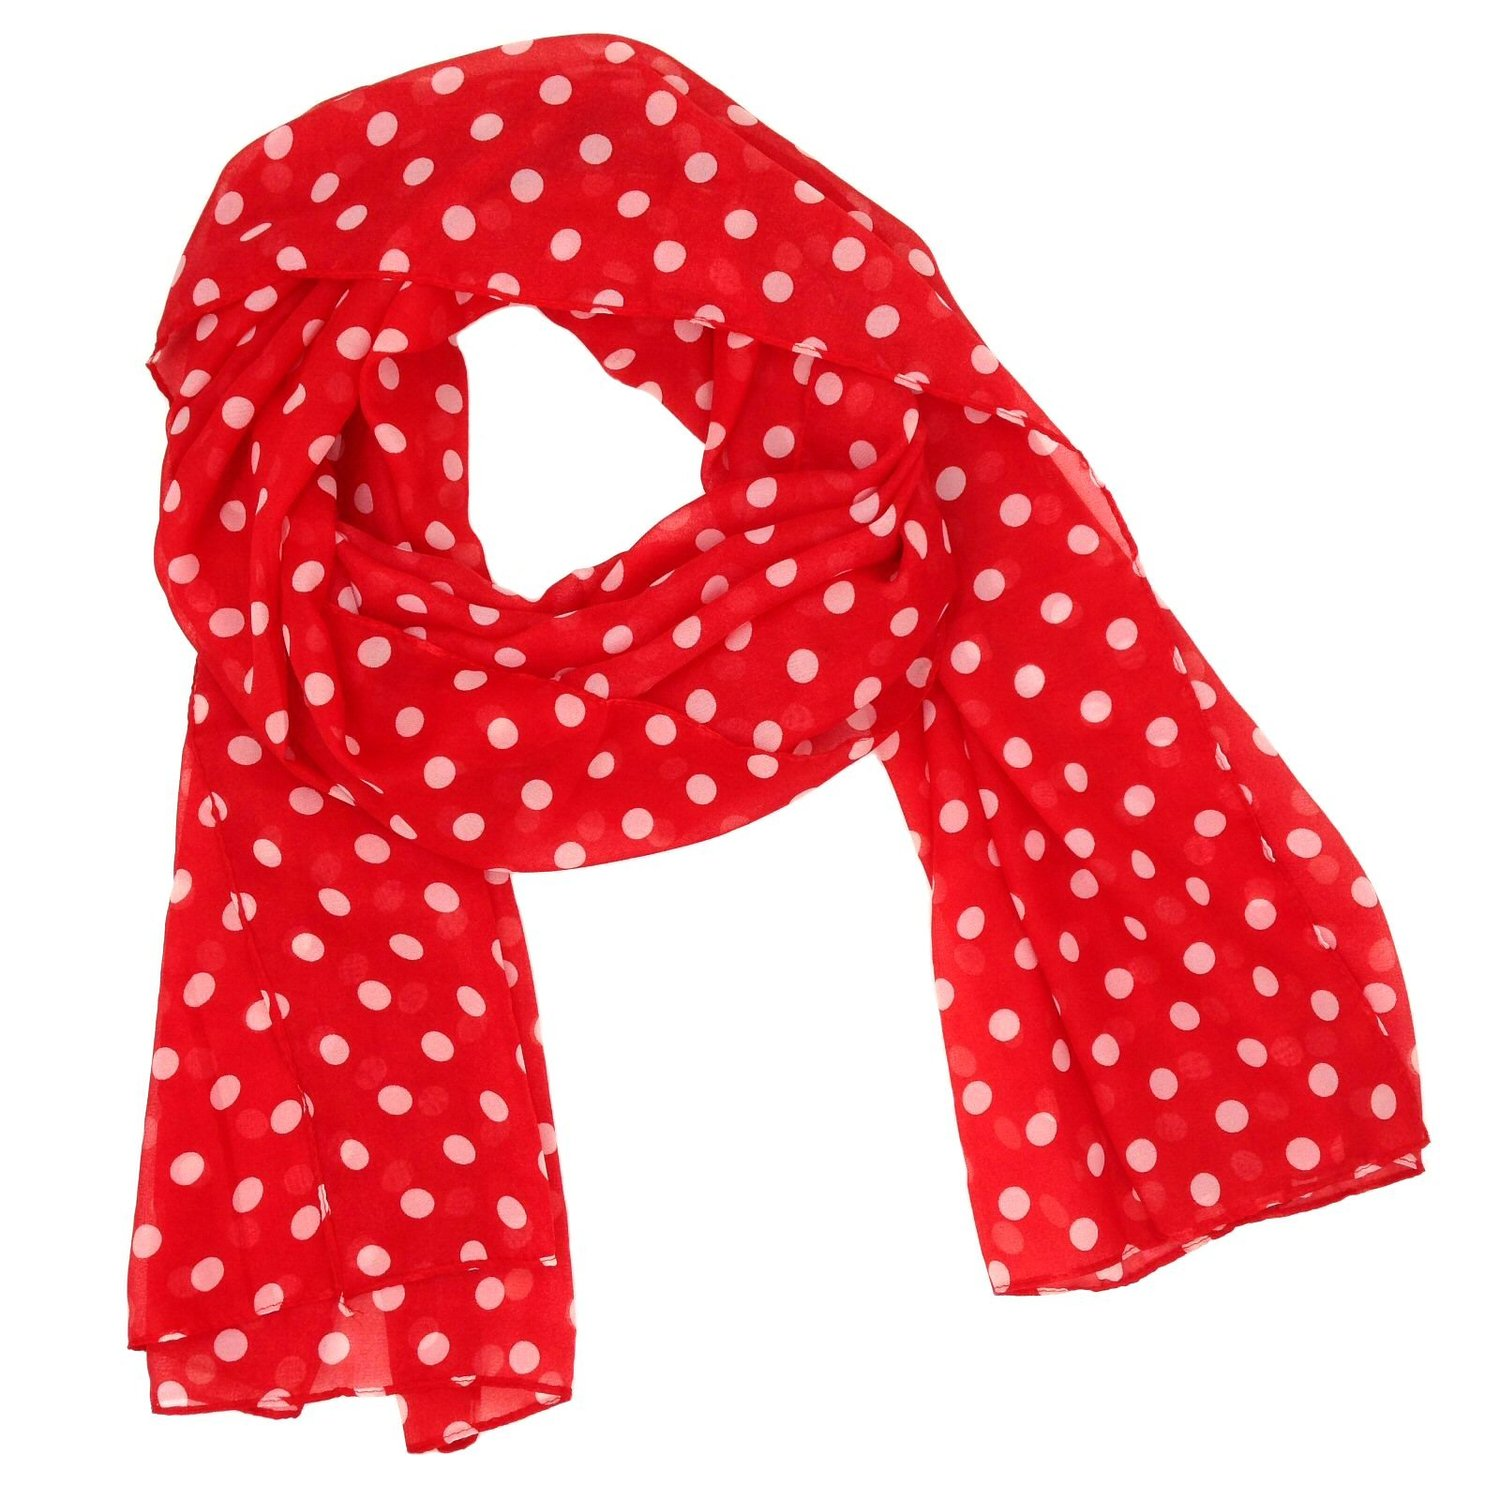 Polka Dot Scarf Designs And Patterns World Scarf